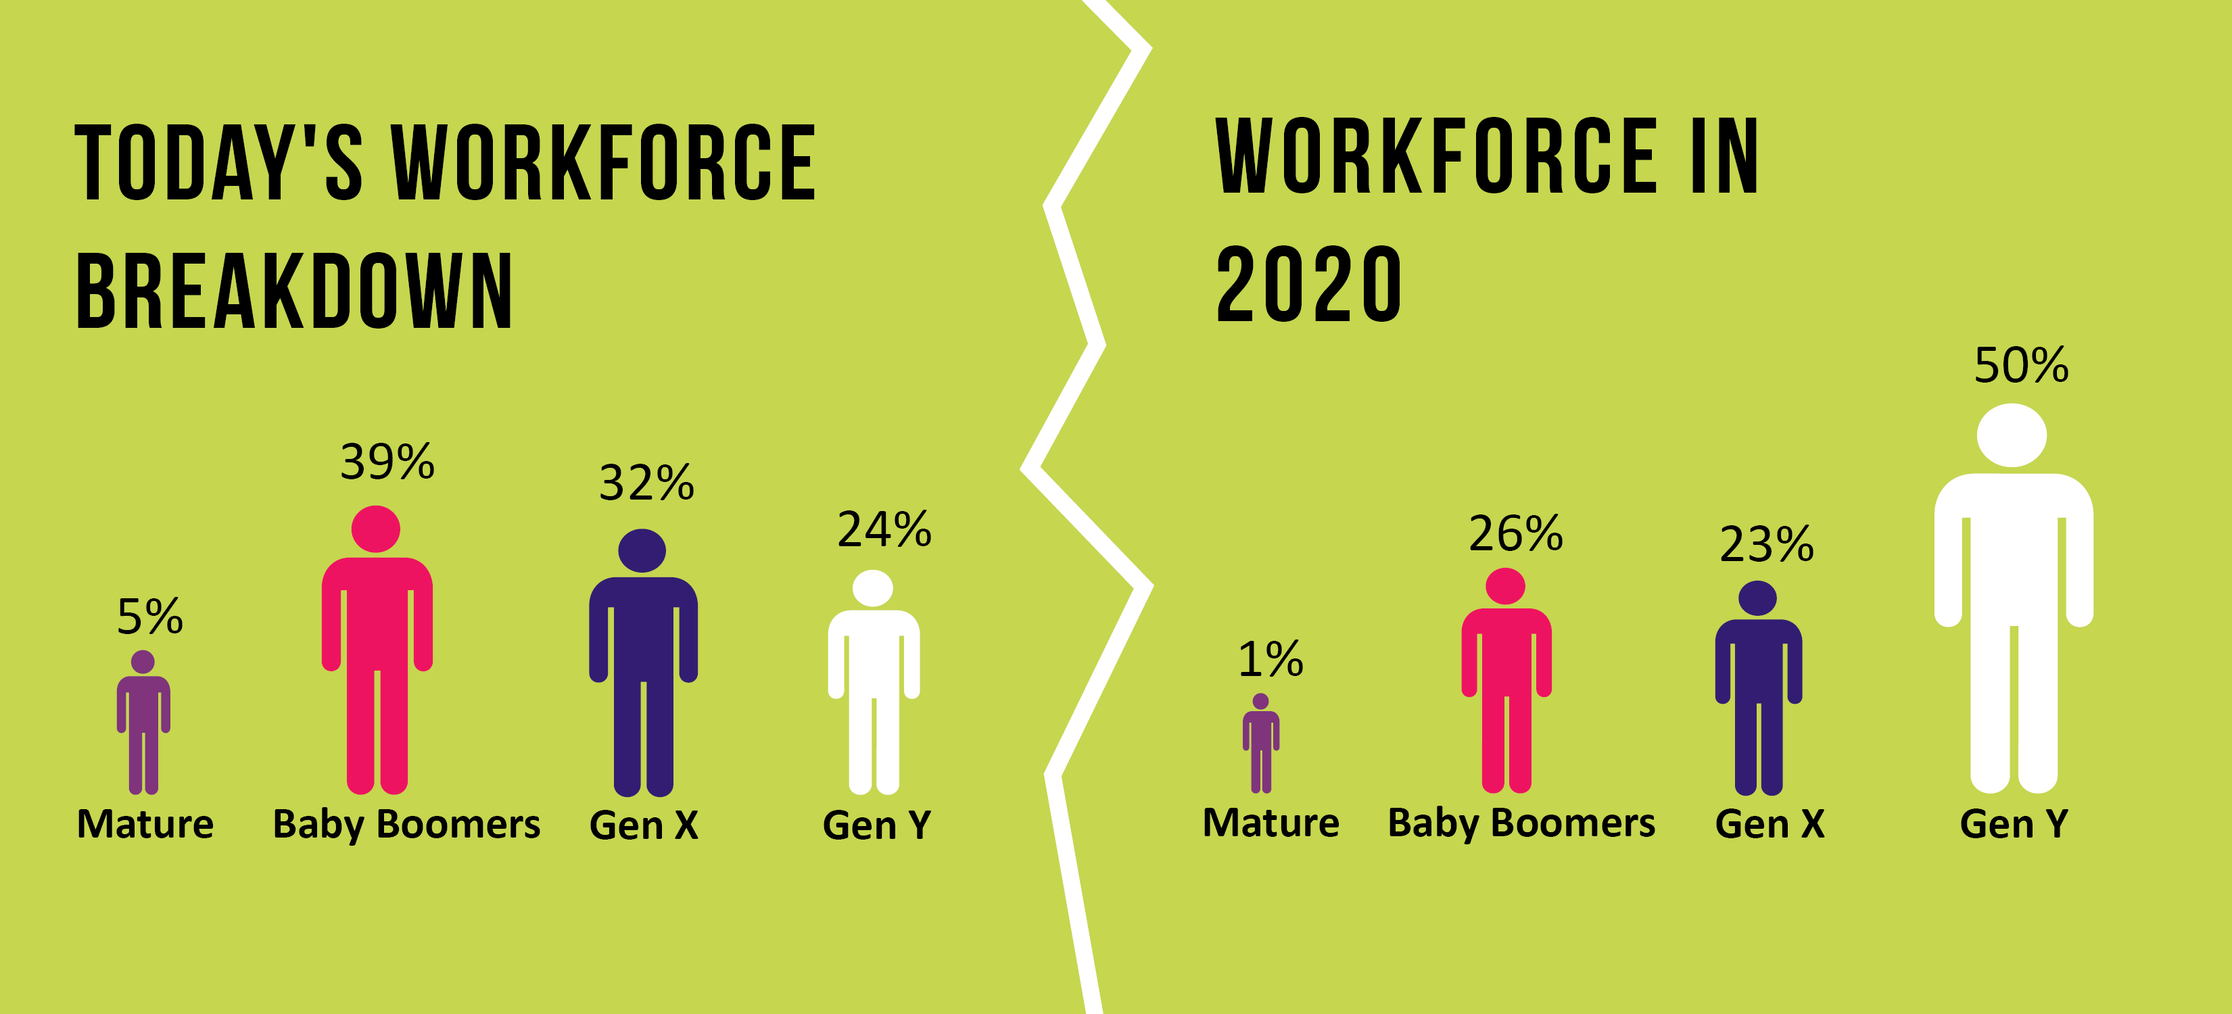 Benefits of Millennials Workforce breakdown Majority workforce